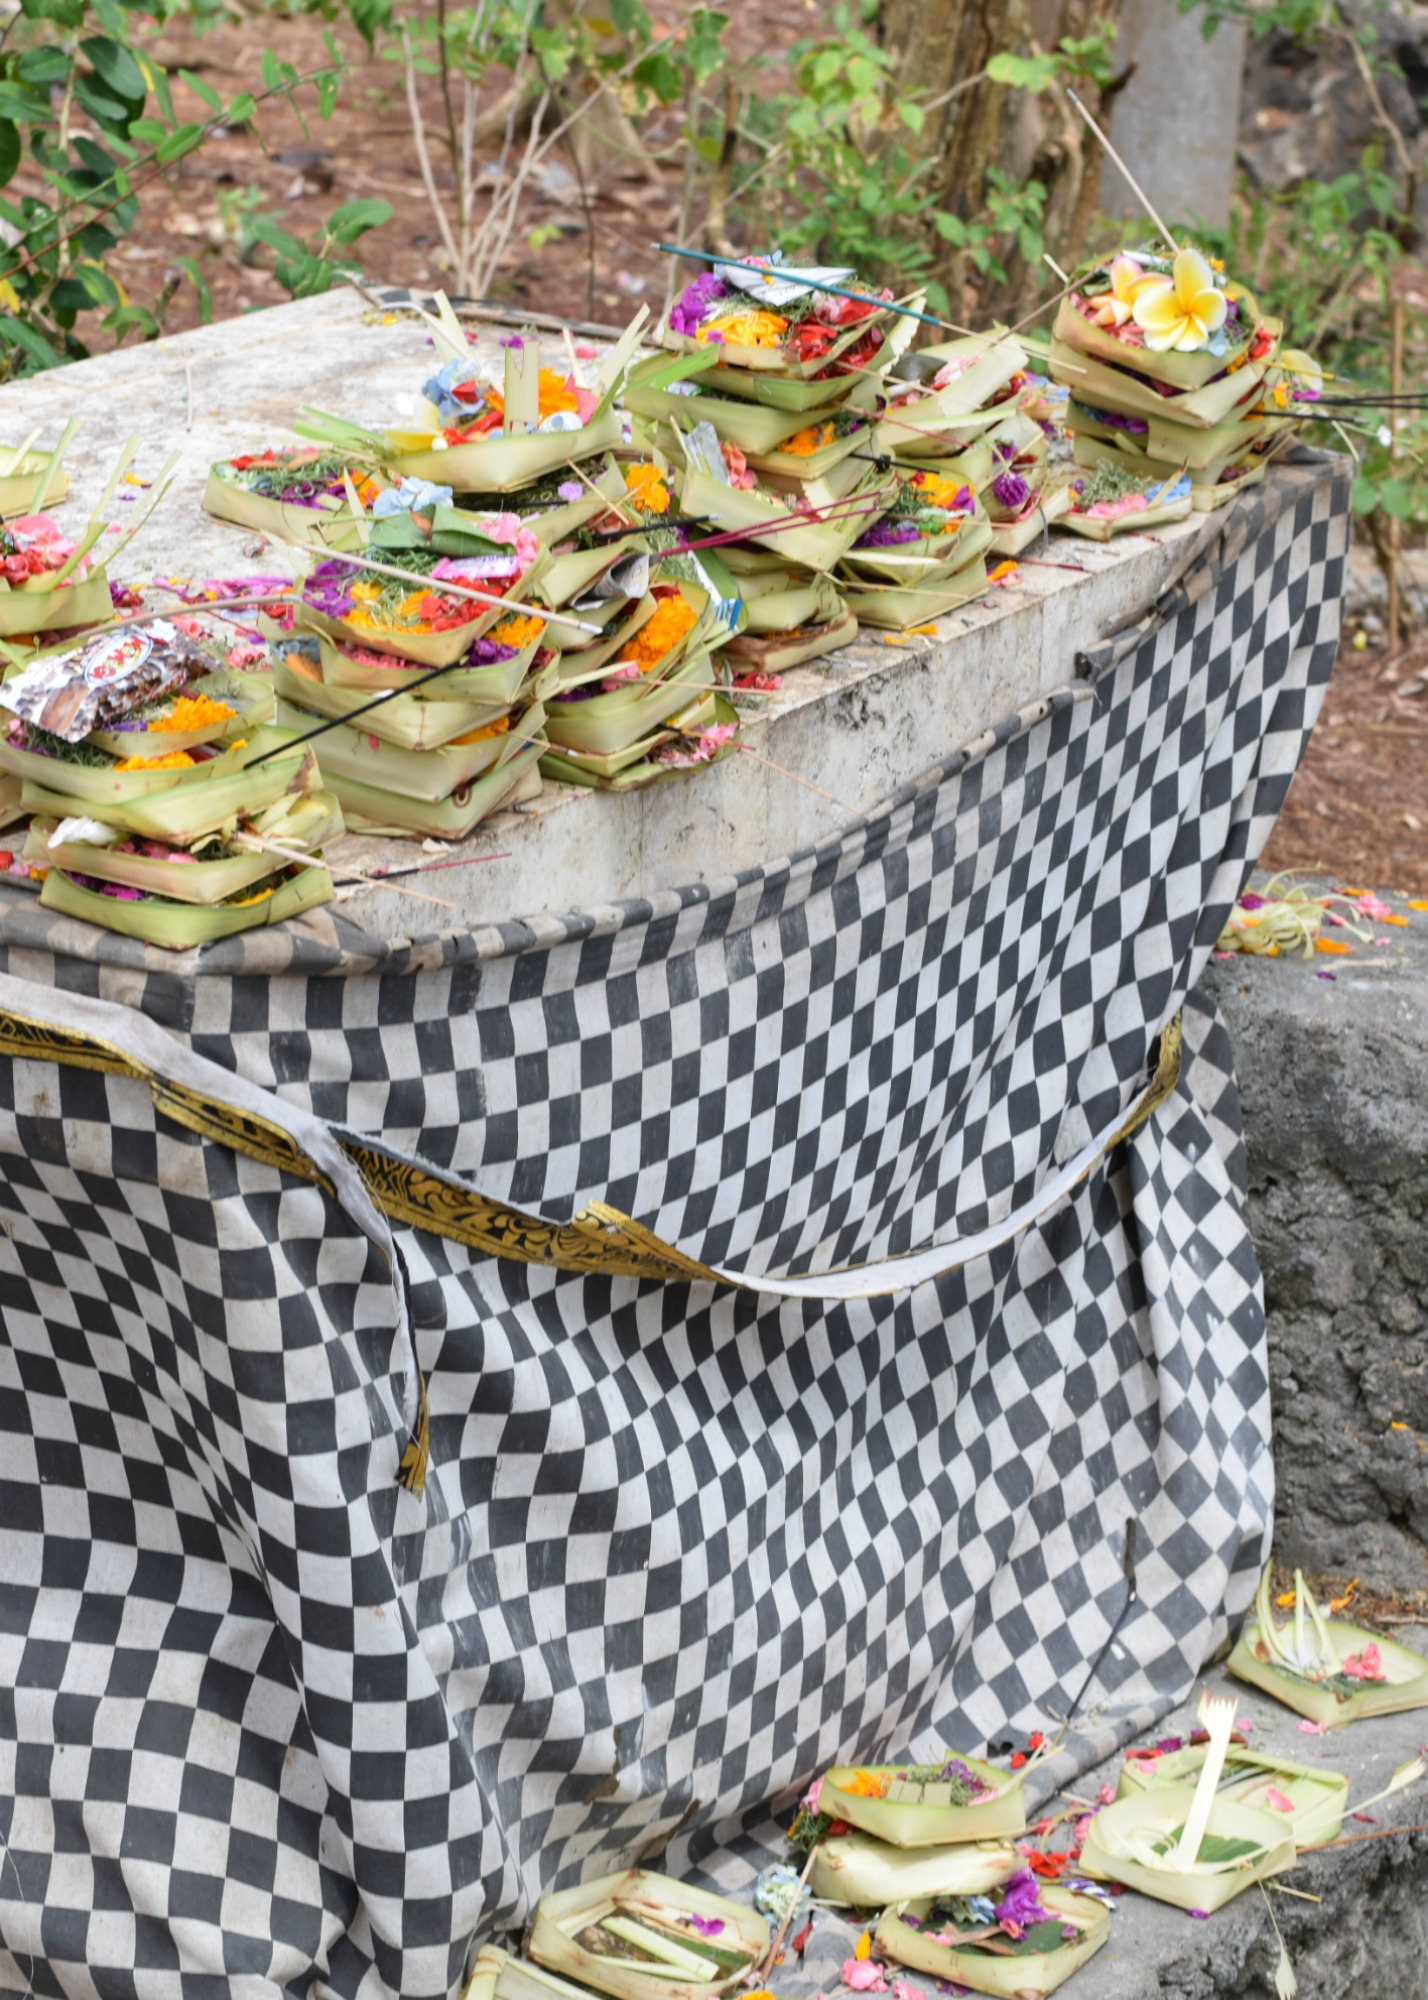 Traditional Balinese Offering - Uluwatu Temple - Bali, Indonesia - Our Bali Trip - Communikait